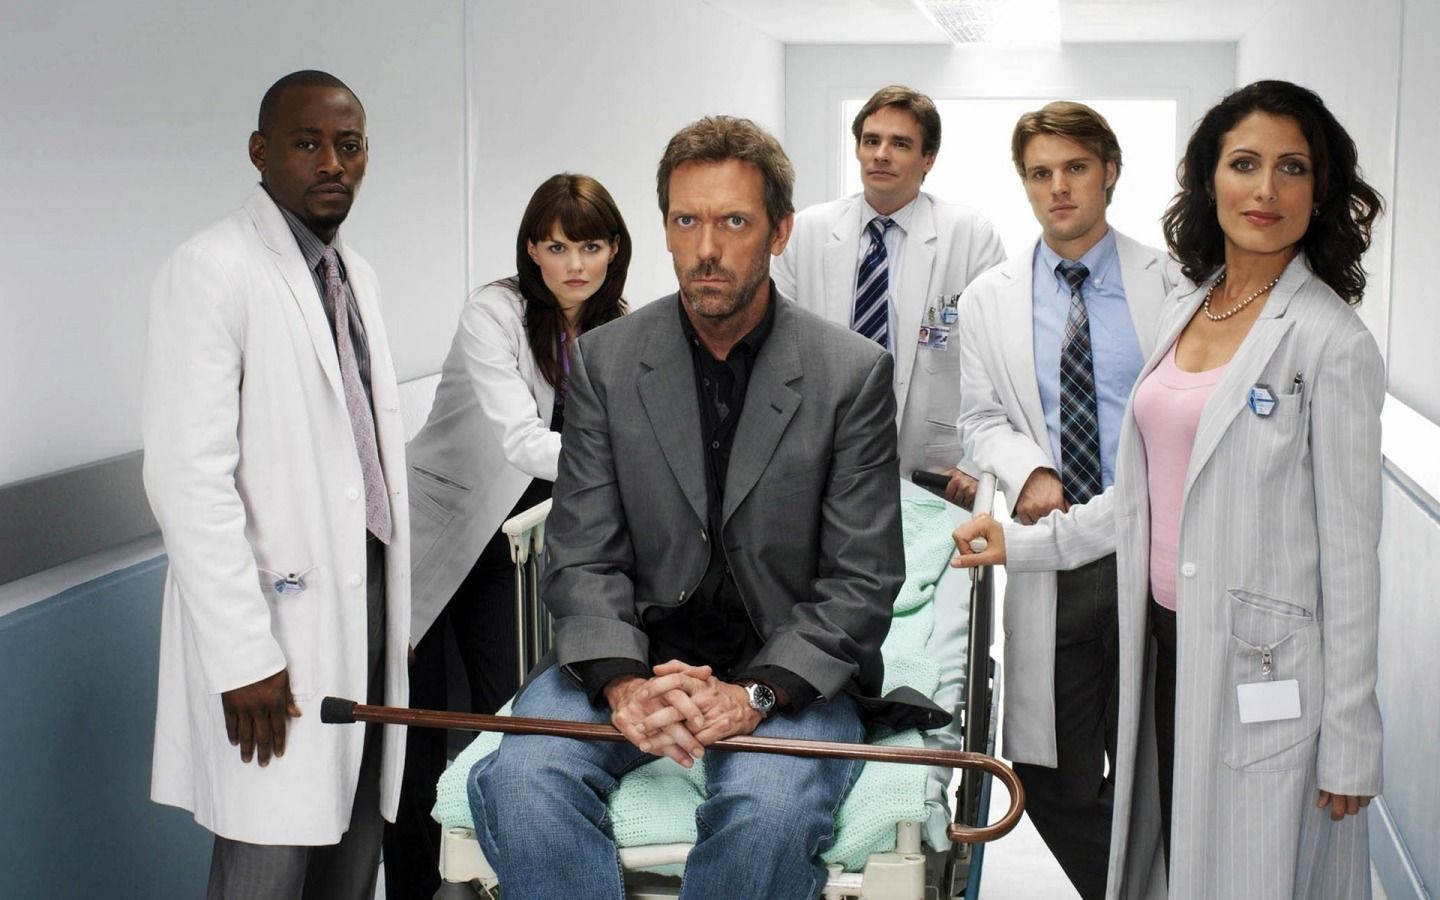 tv shows | download high quality 1440 x 900 house tv show